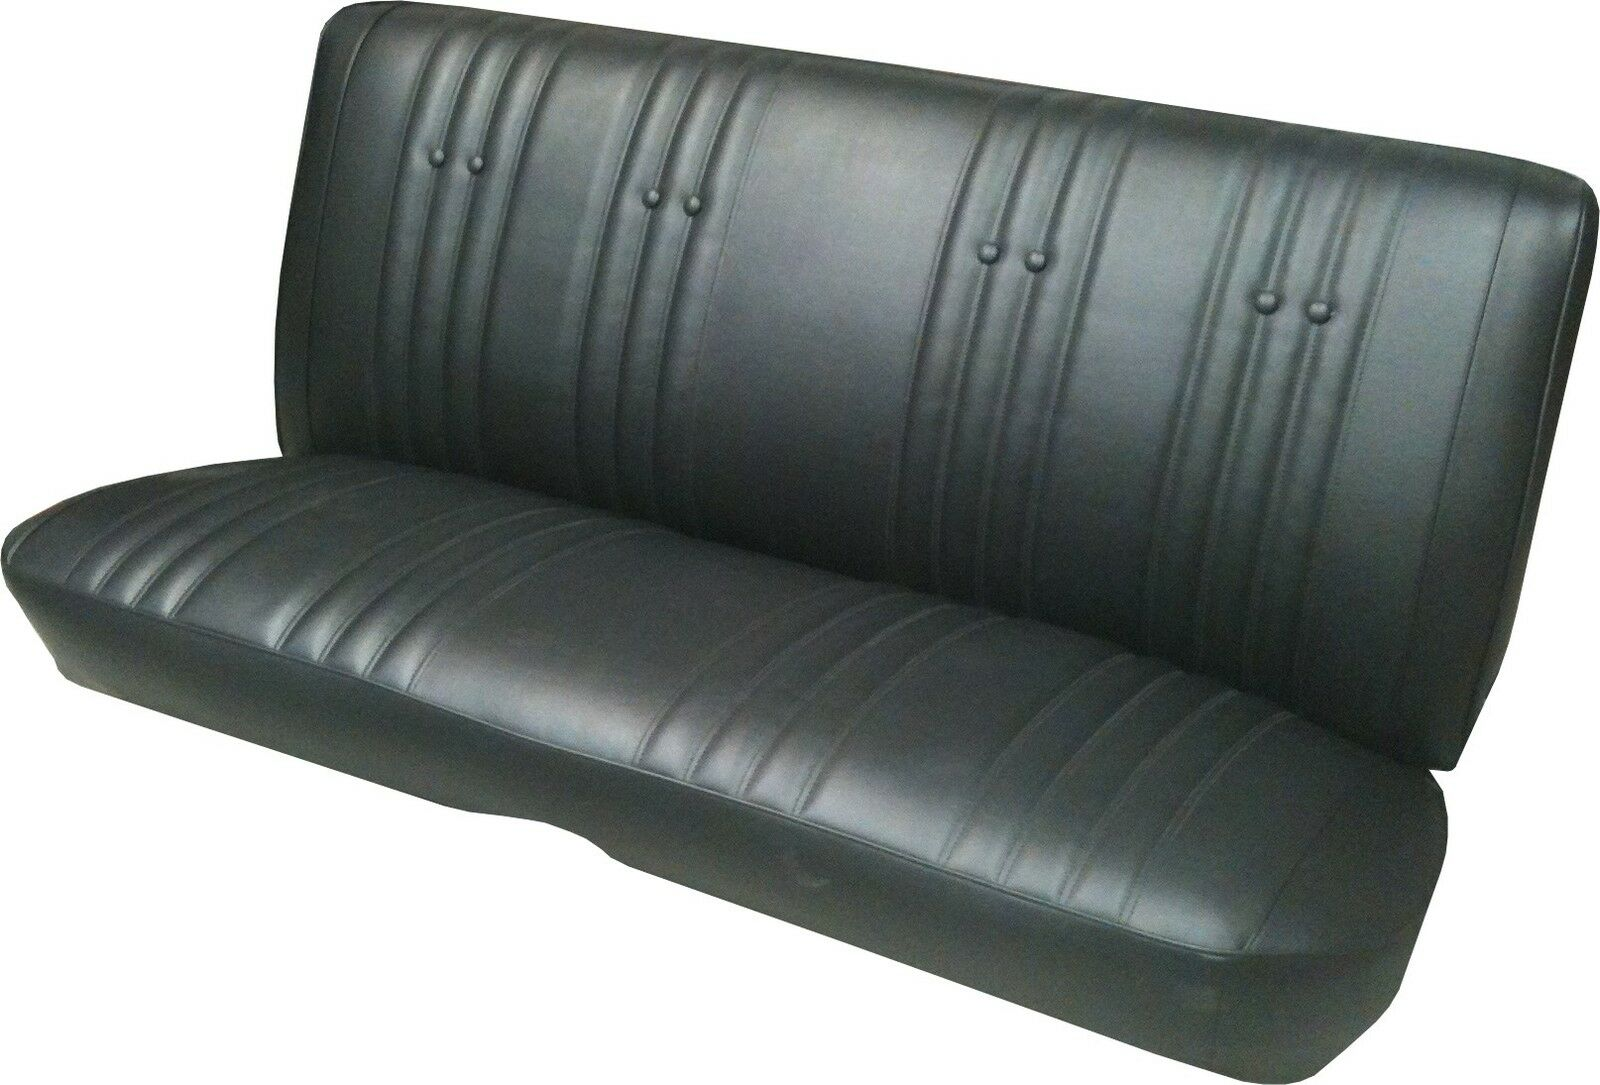 Seat Skins For Trucks >> 1966 66 CHEVY IMPALA REAR SEAT COVER UPHOLSTERY coupe • $206.95 - PicClick